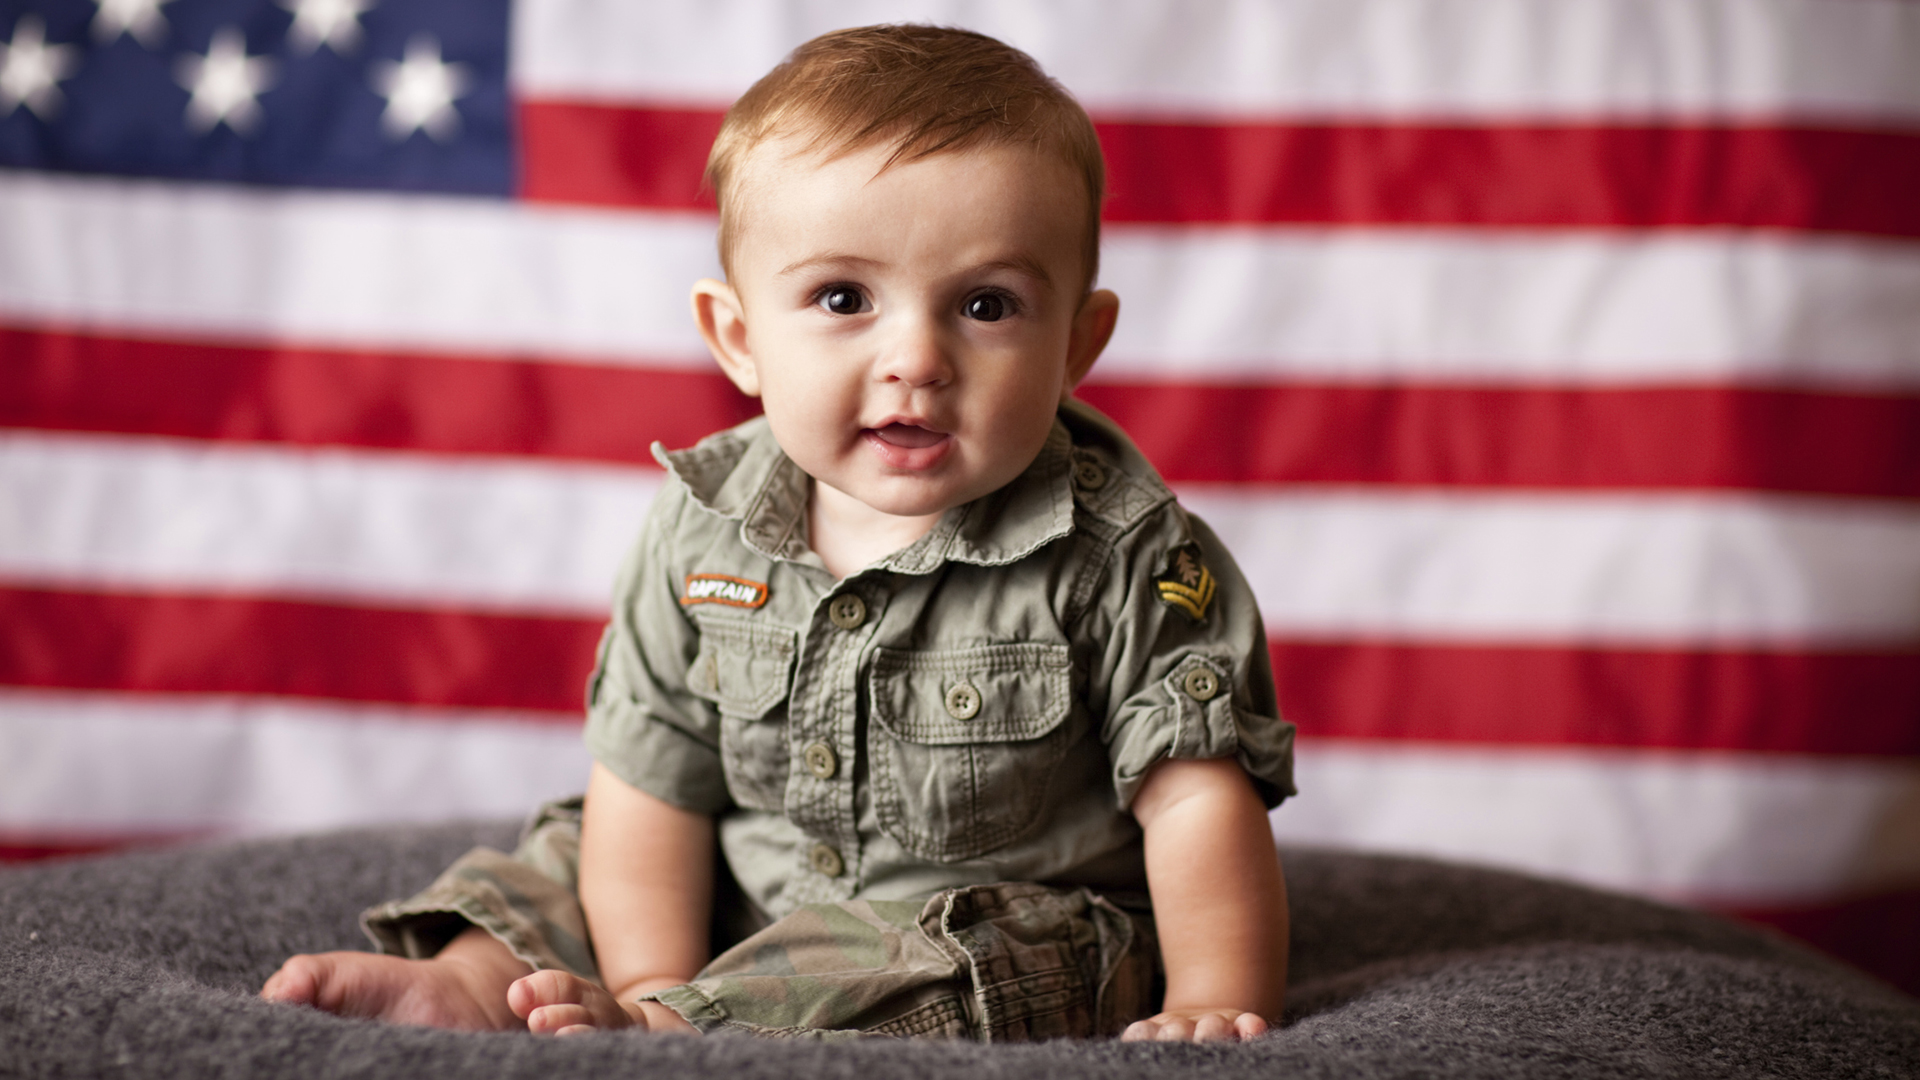 Military baby with american flag | Sheknows.com